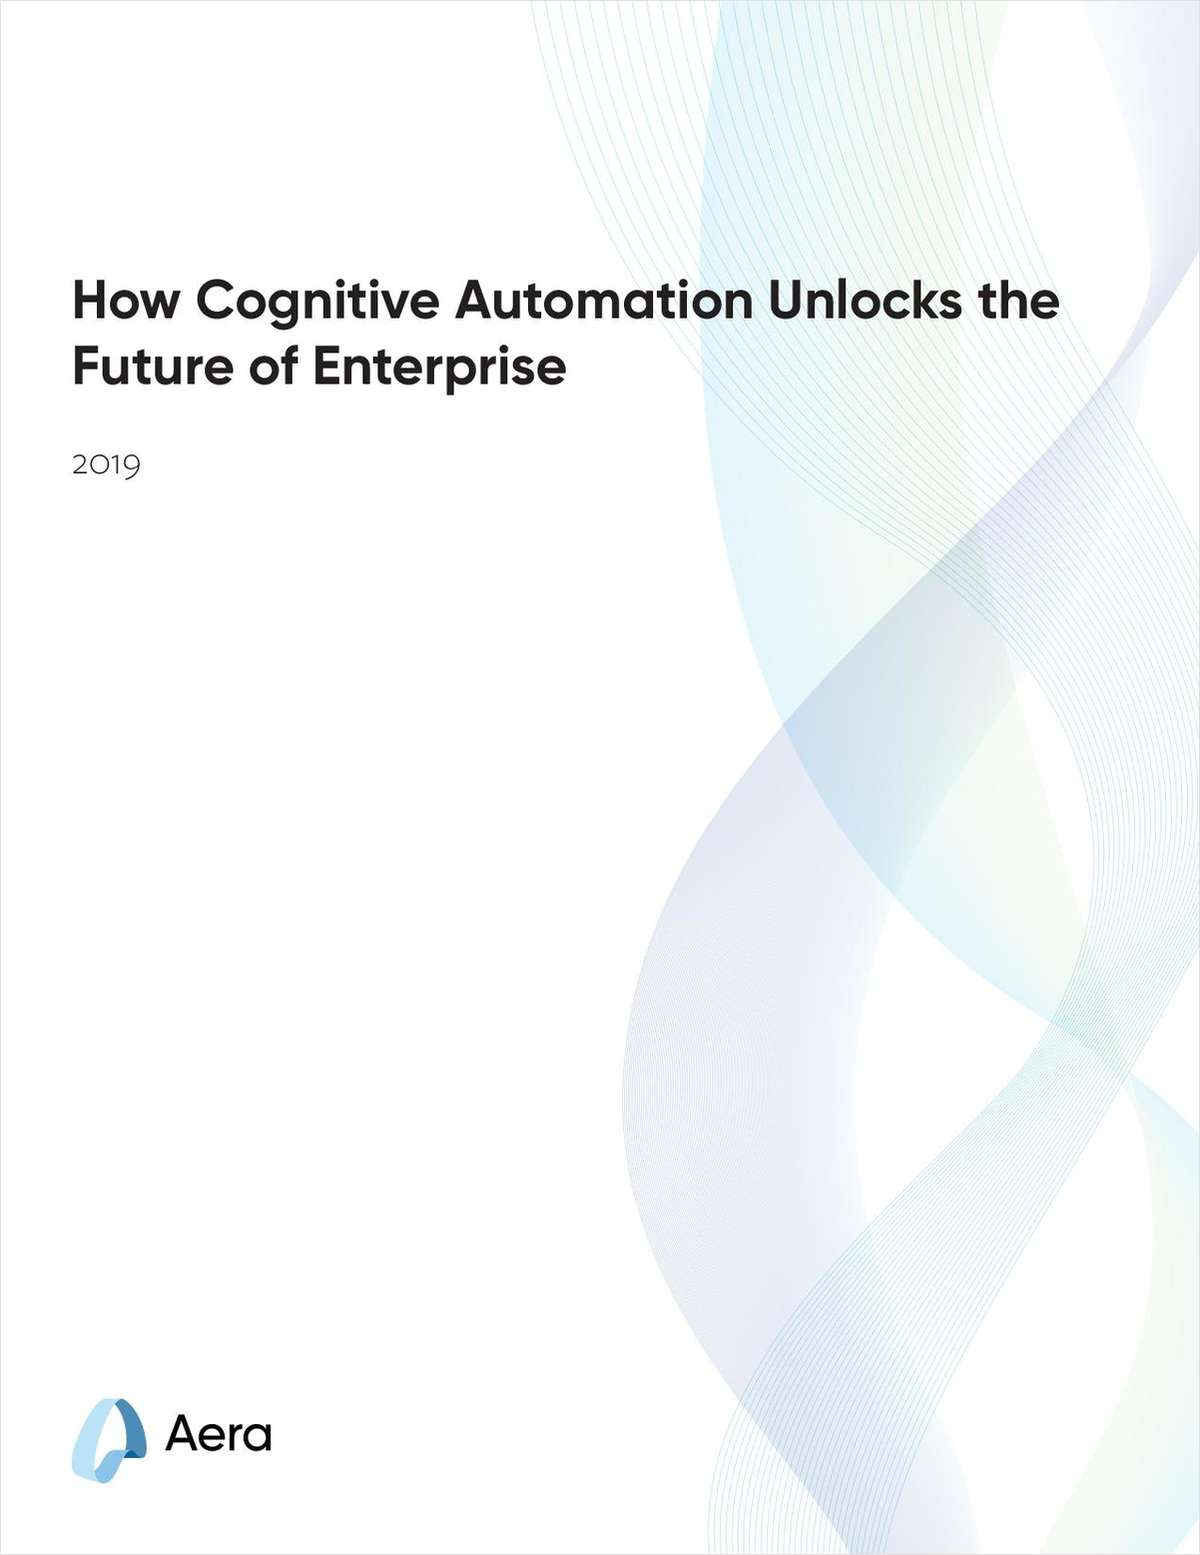 How Cognitive Automation Unlocks the Future of Enterprise